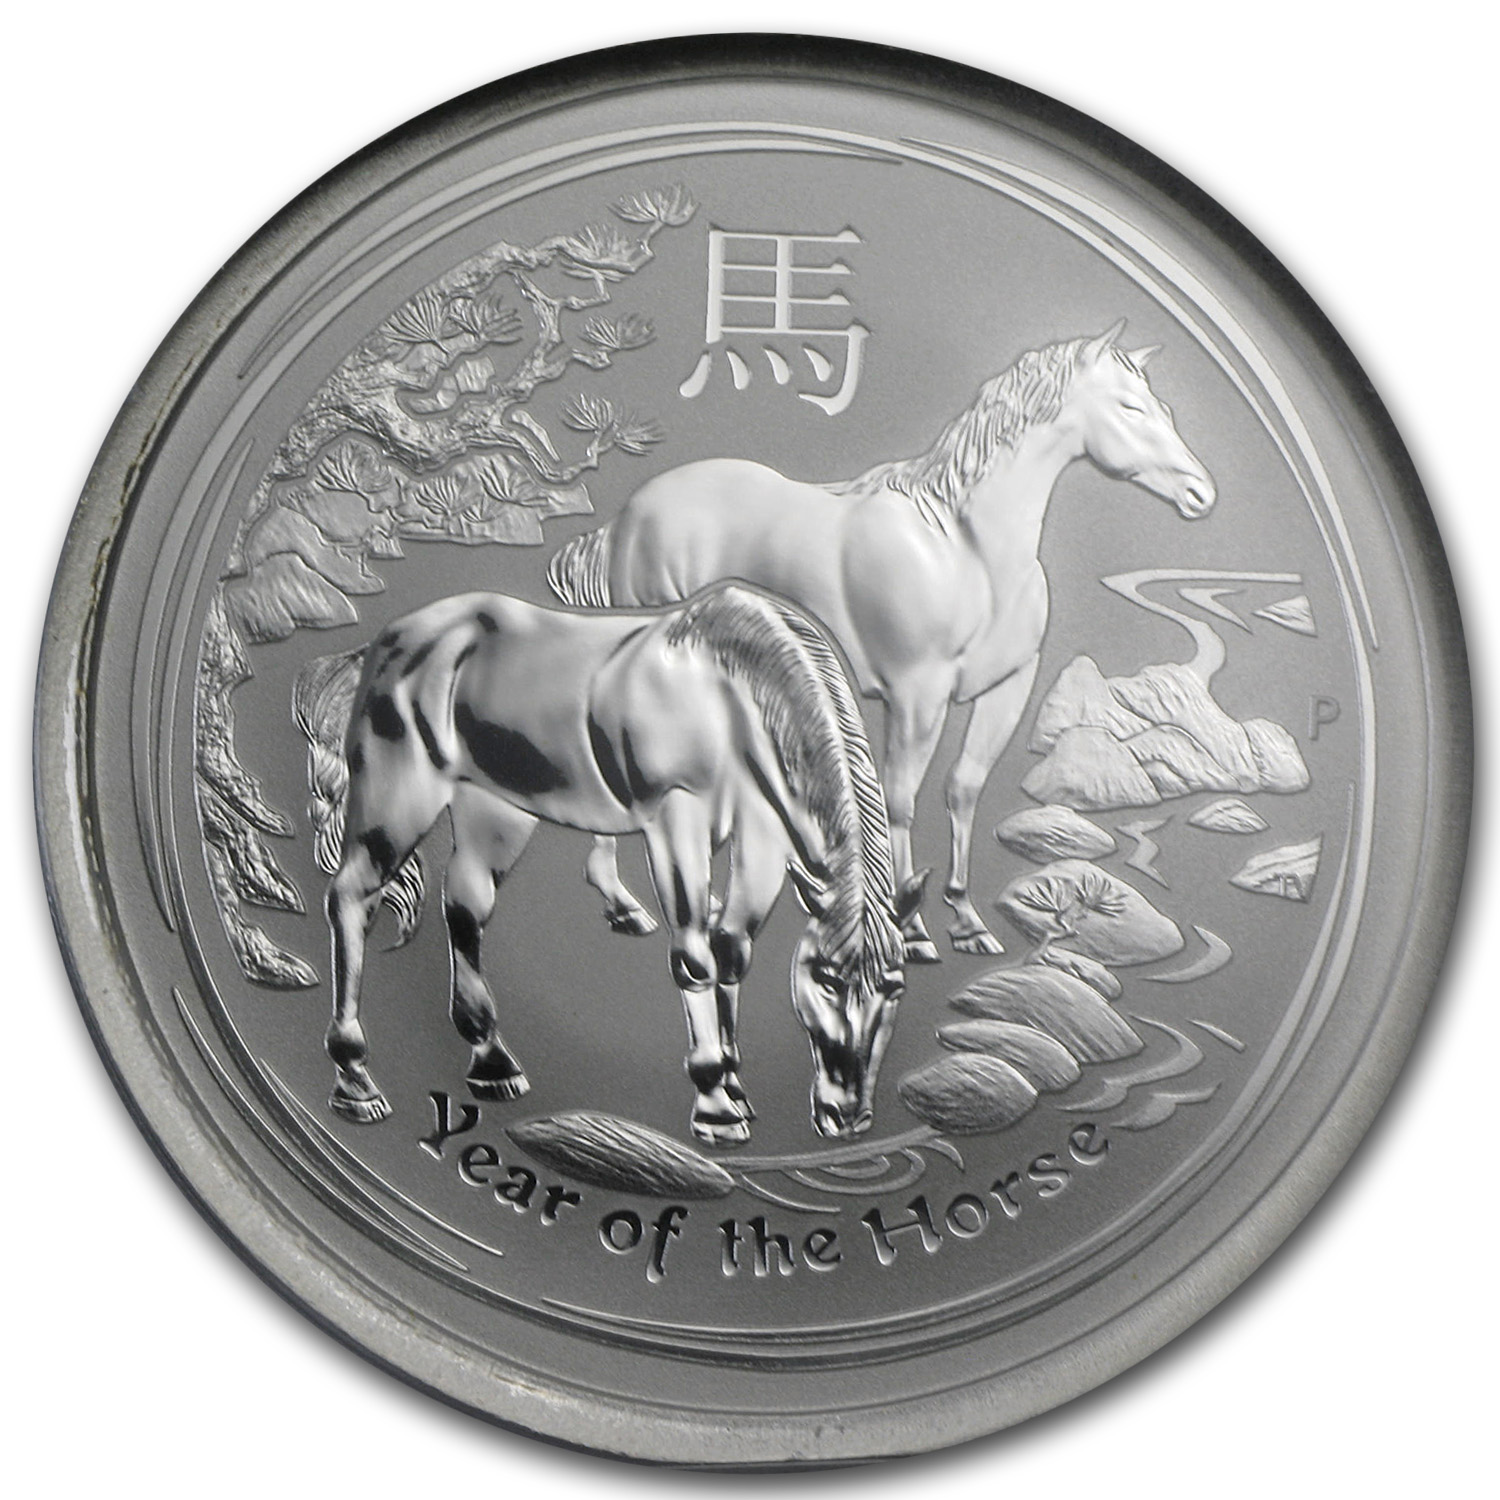 2014 1 oz Silver Year of the Horse Coin (SII) MS-69 (FS) PCGS